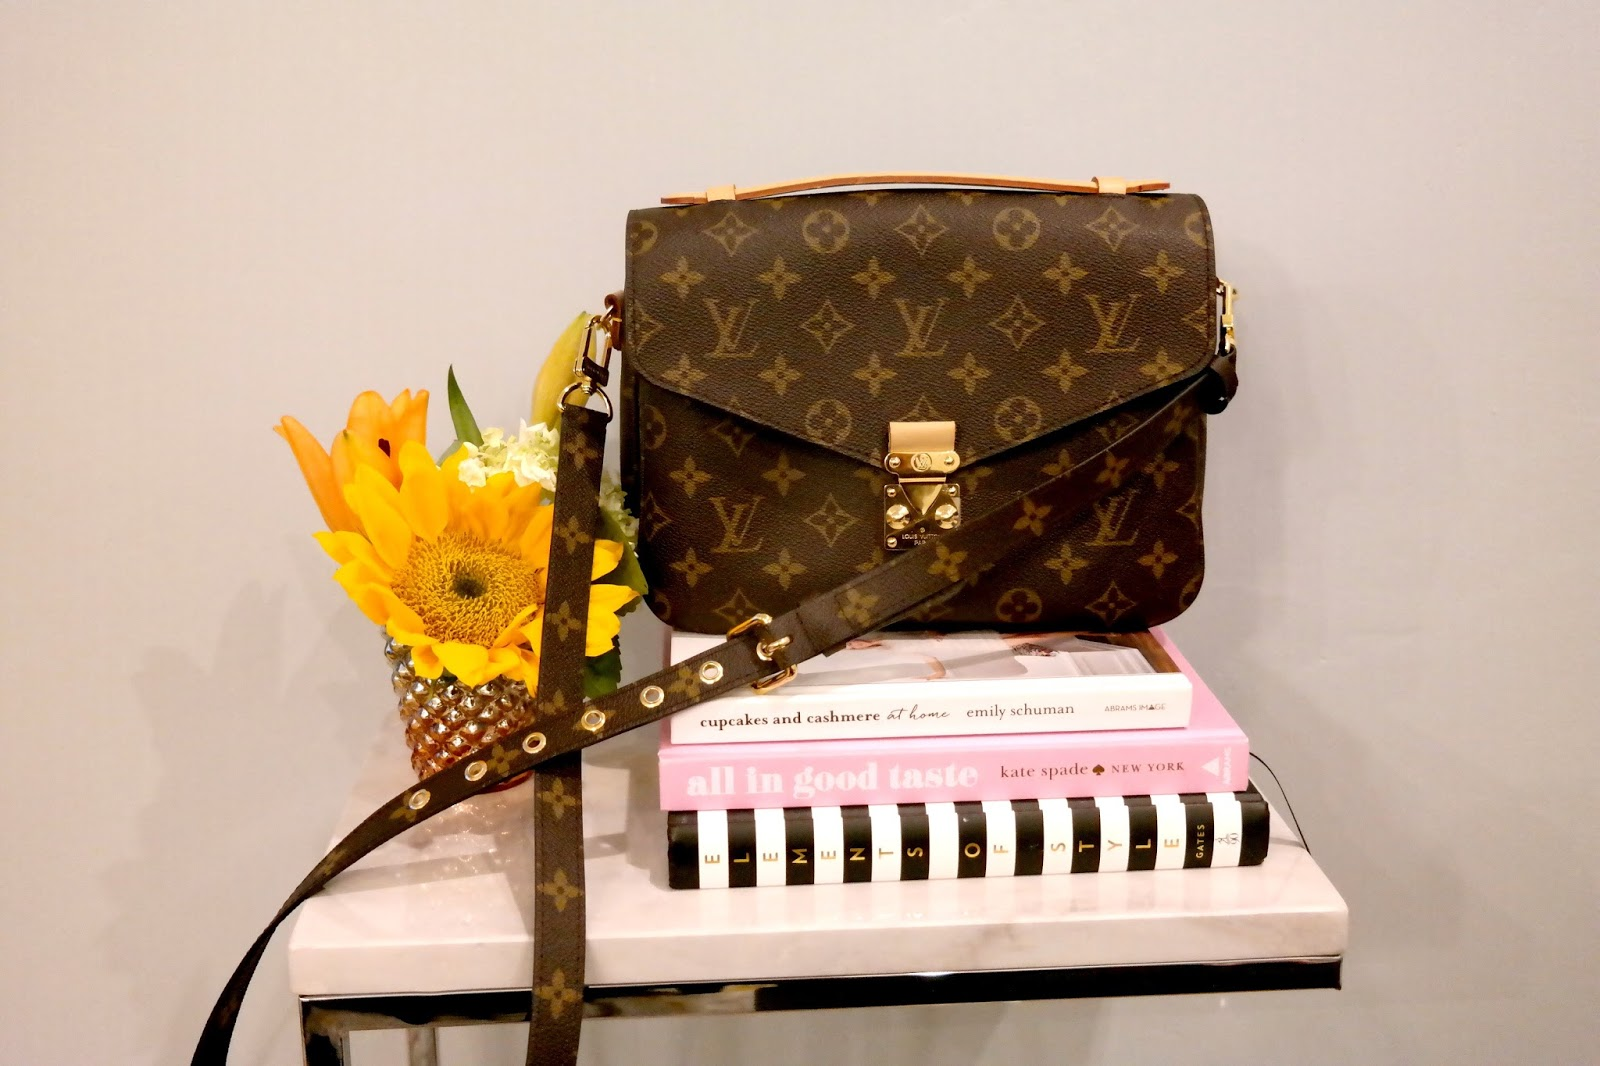 boston blogger, pochetet metis monogram print, classic bag, louis vuitton, french designer